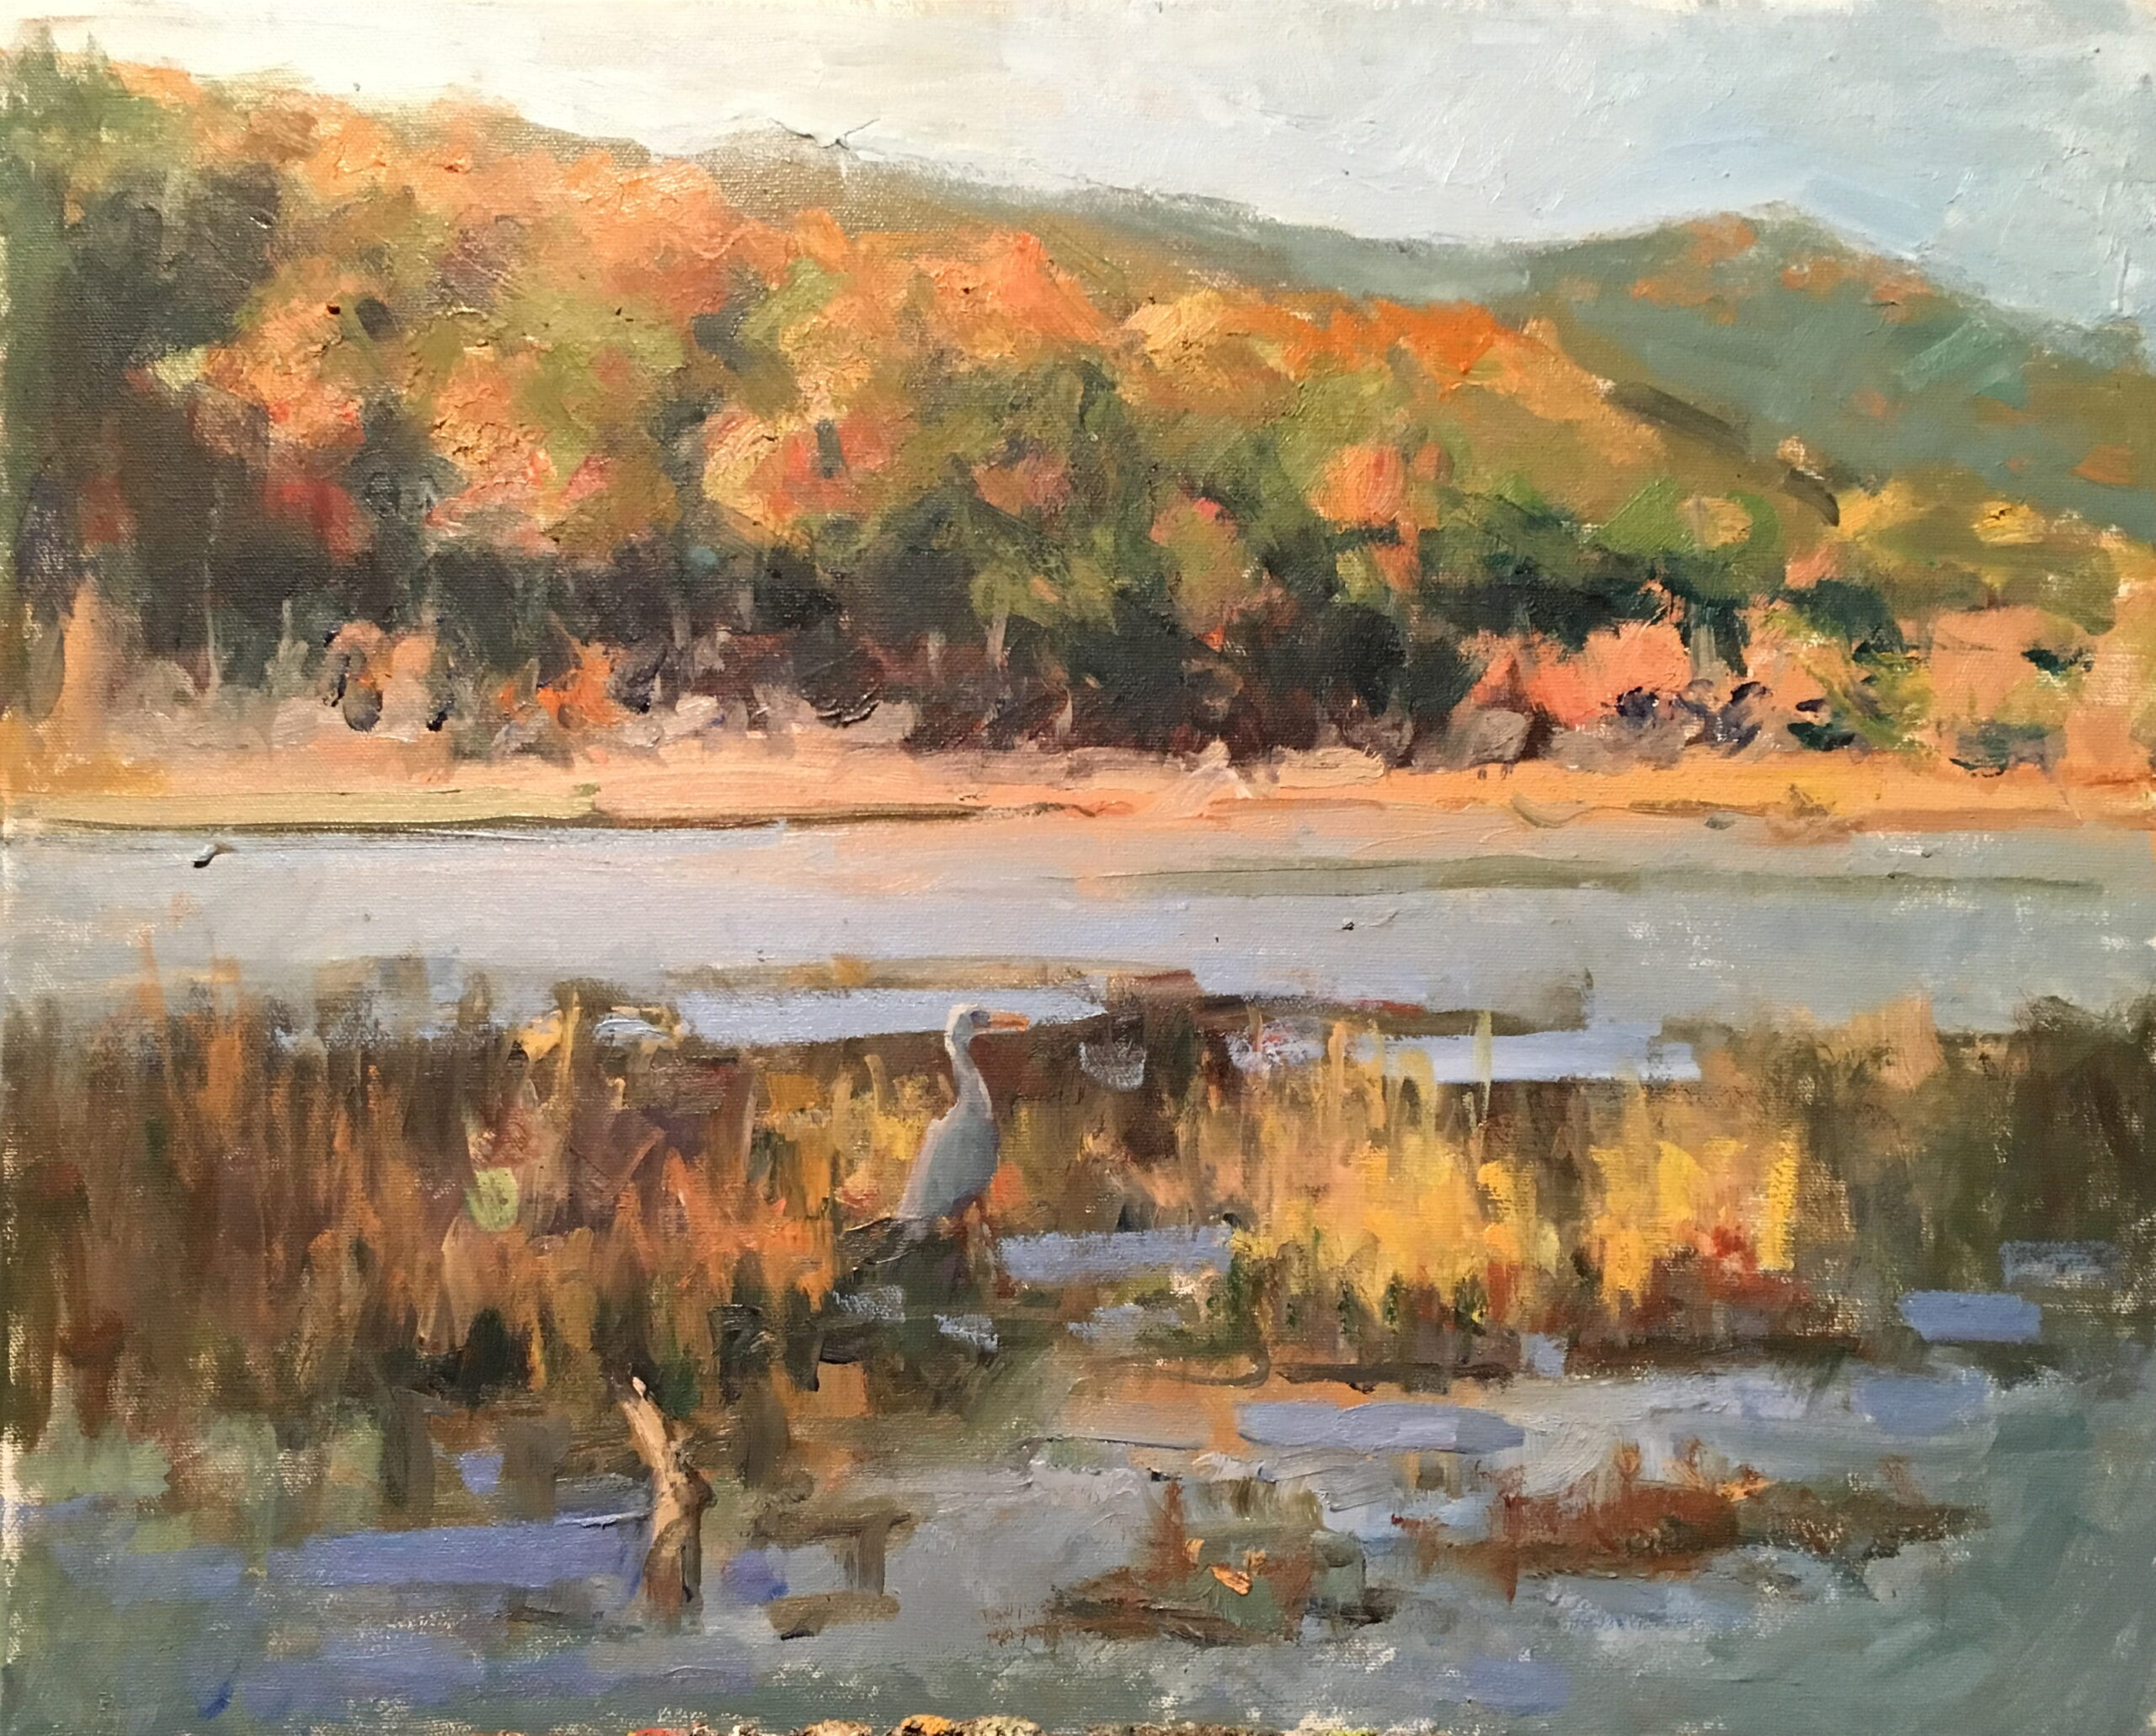 Heron at Mud Pond, Oil on Canvas, 16 x 20 Inches, by Susan Grisell, $550